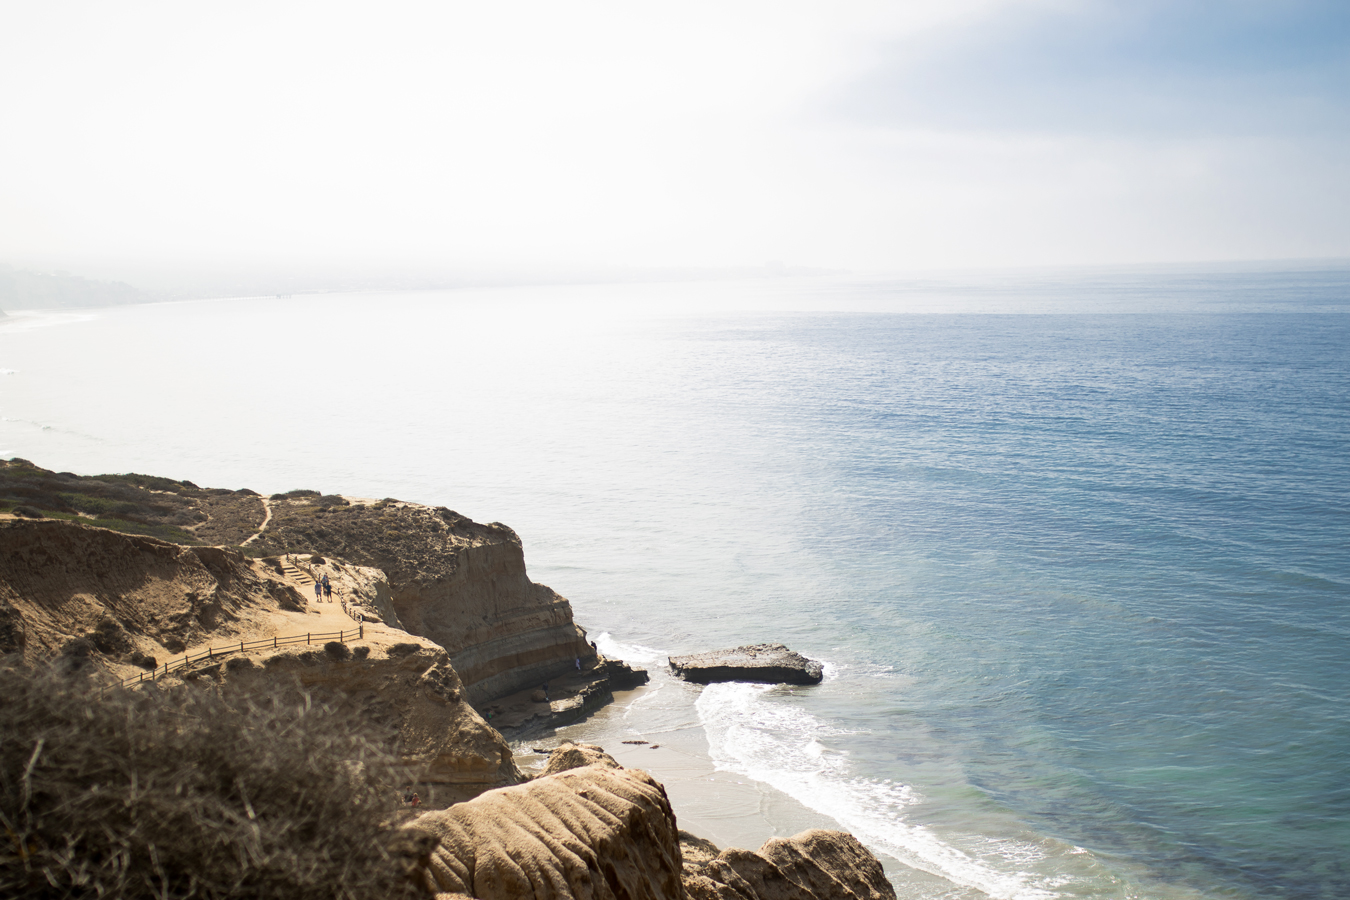 Torrey Pines trail in La Jolla, California